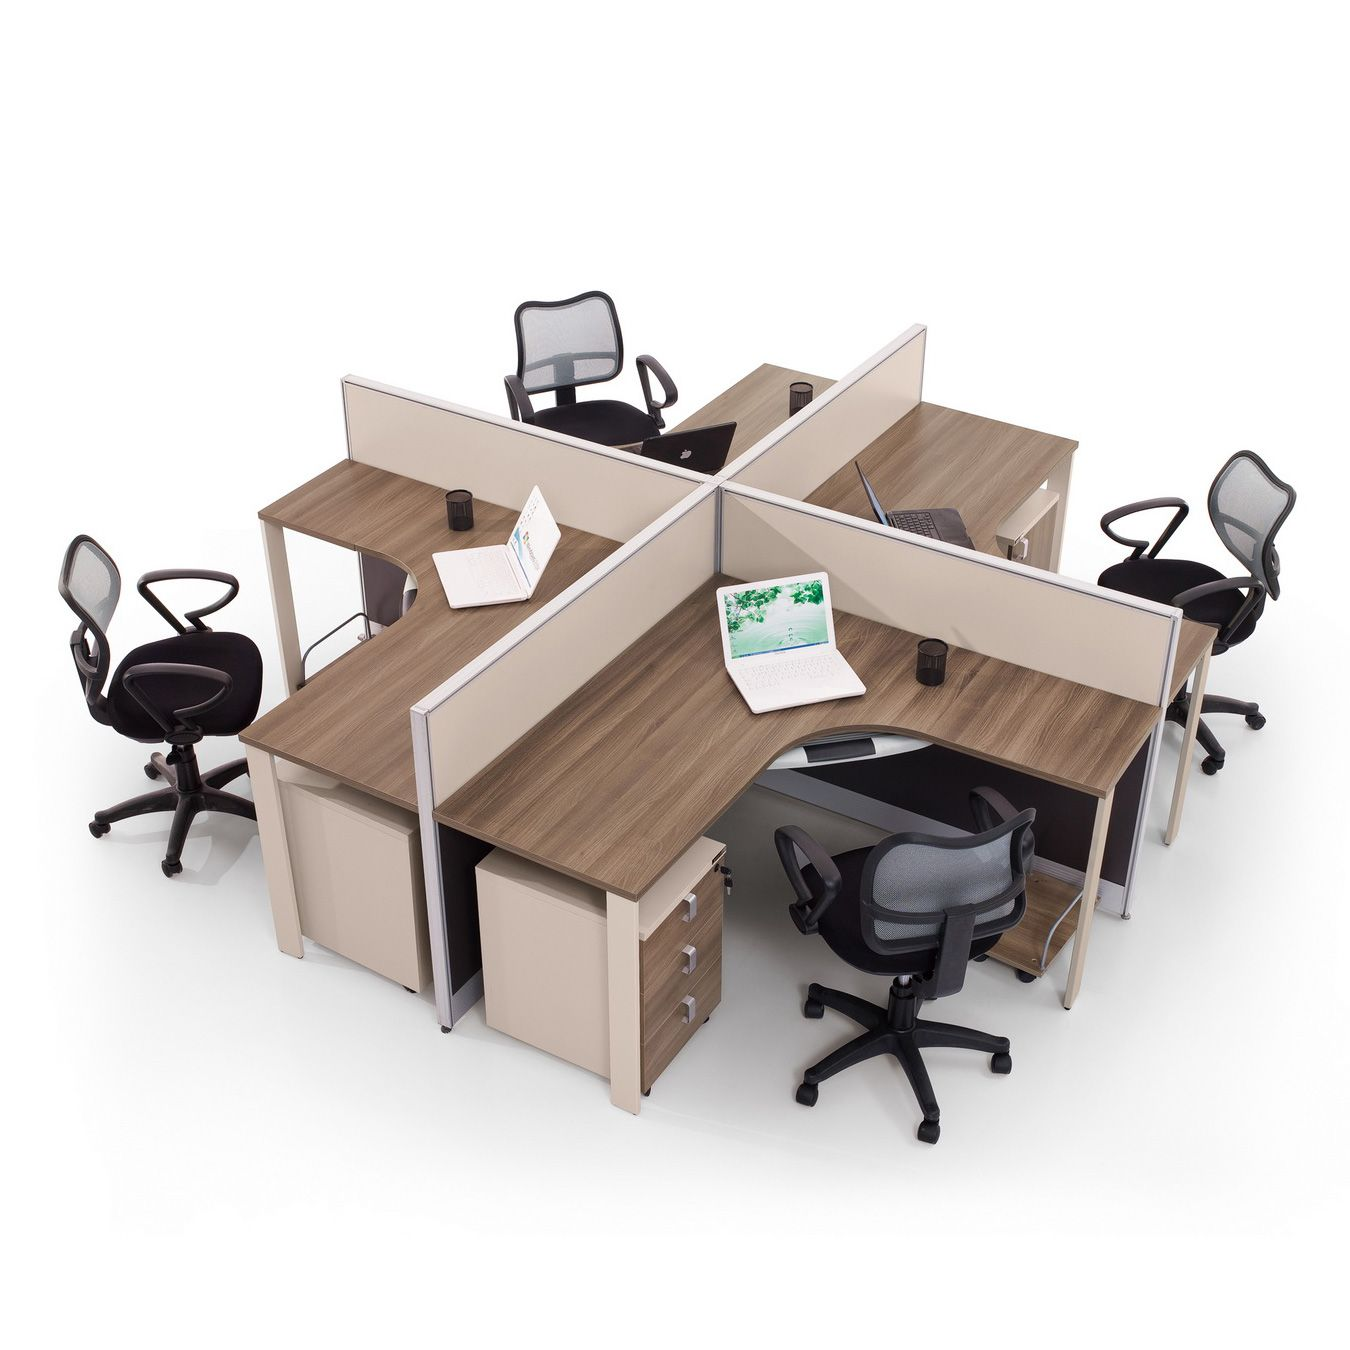 Modern Wood Office Furniture Workstation with Partition Screen 7F